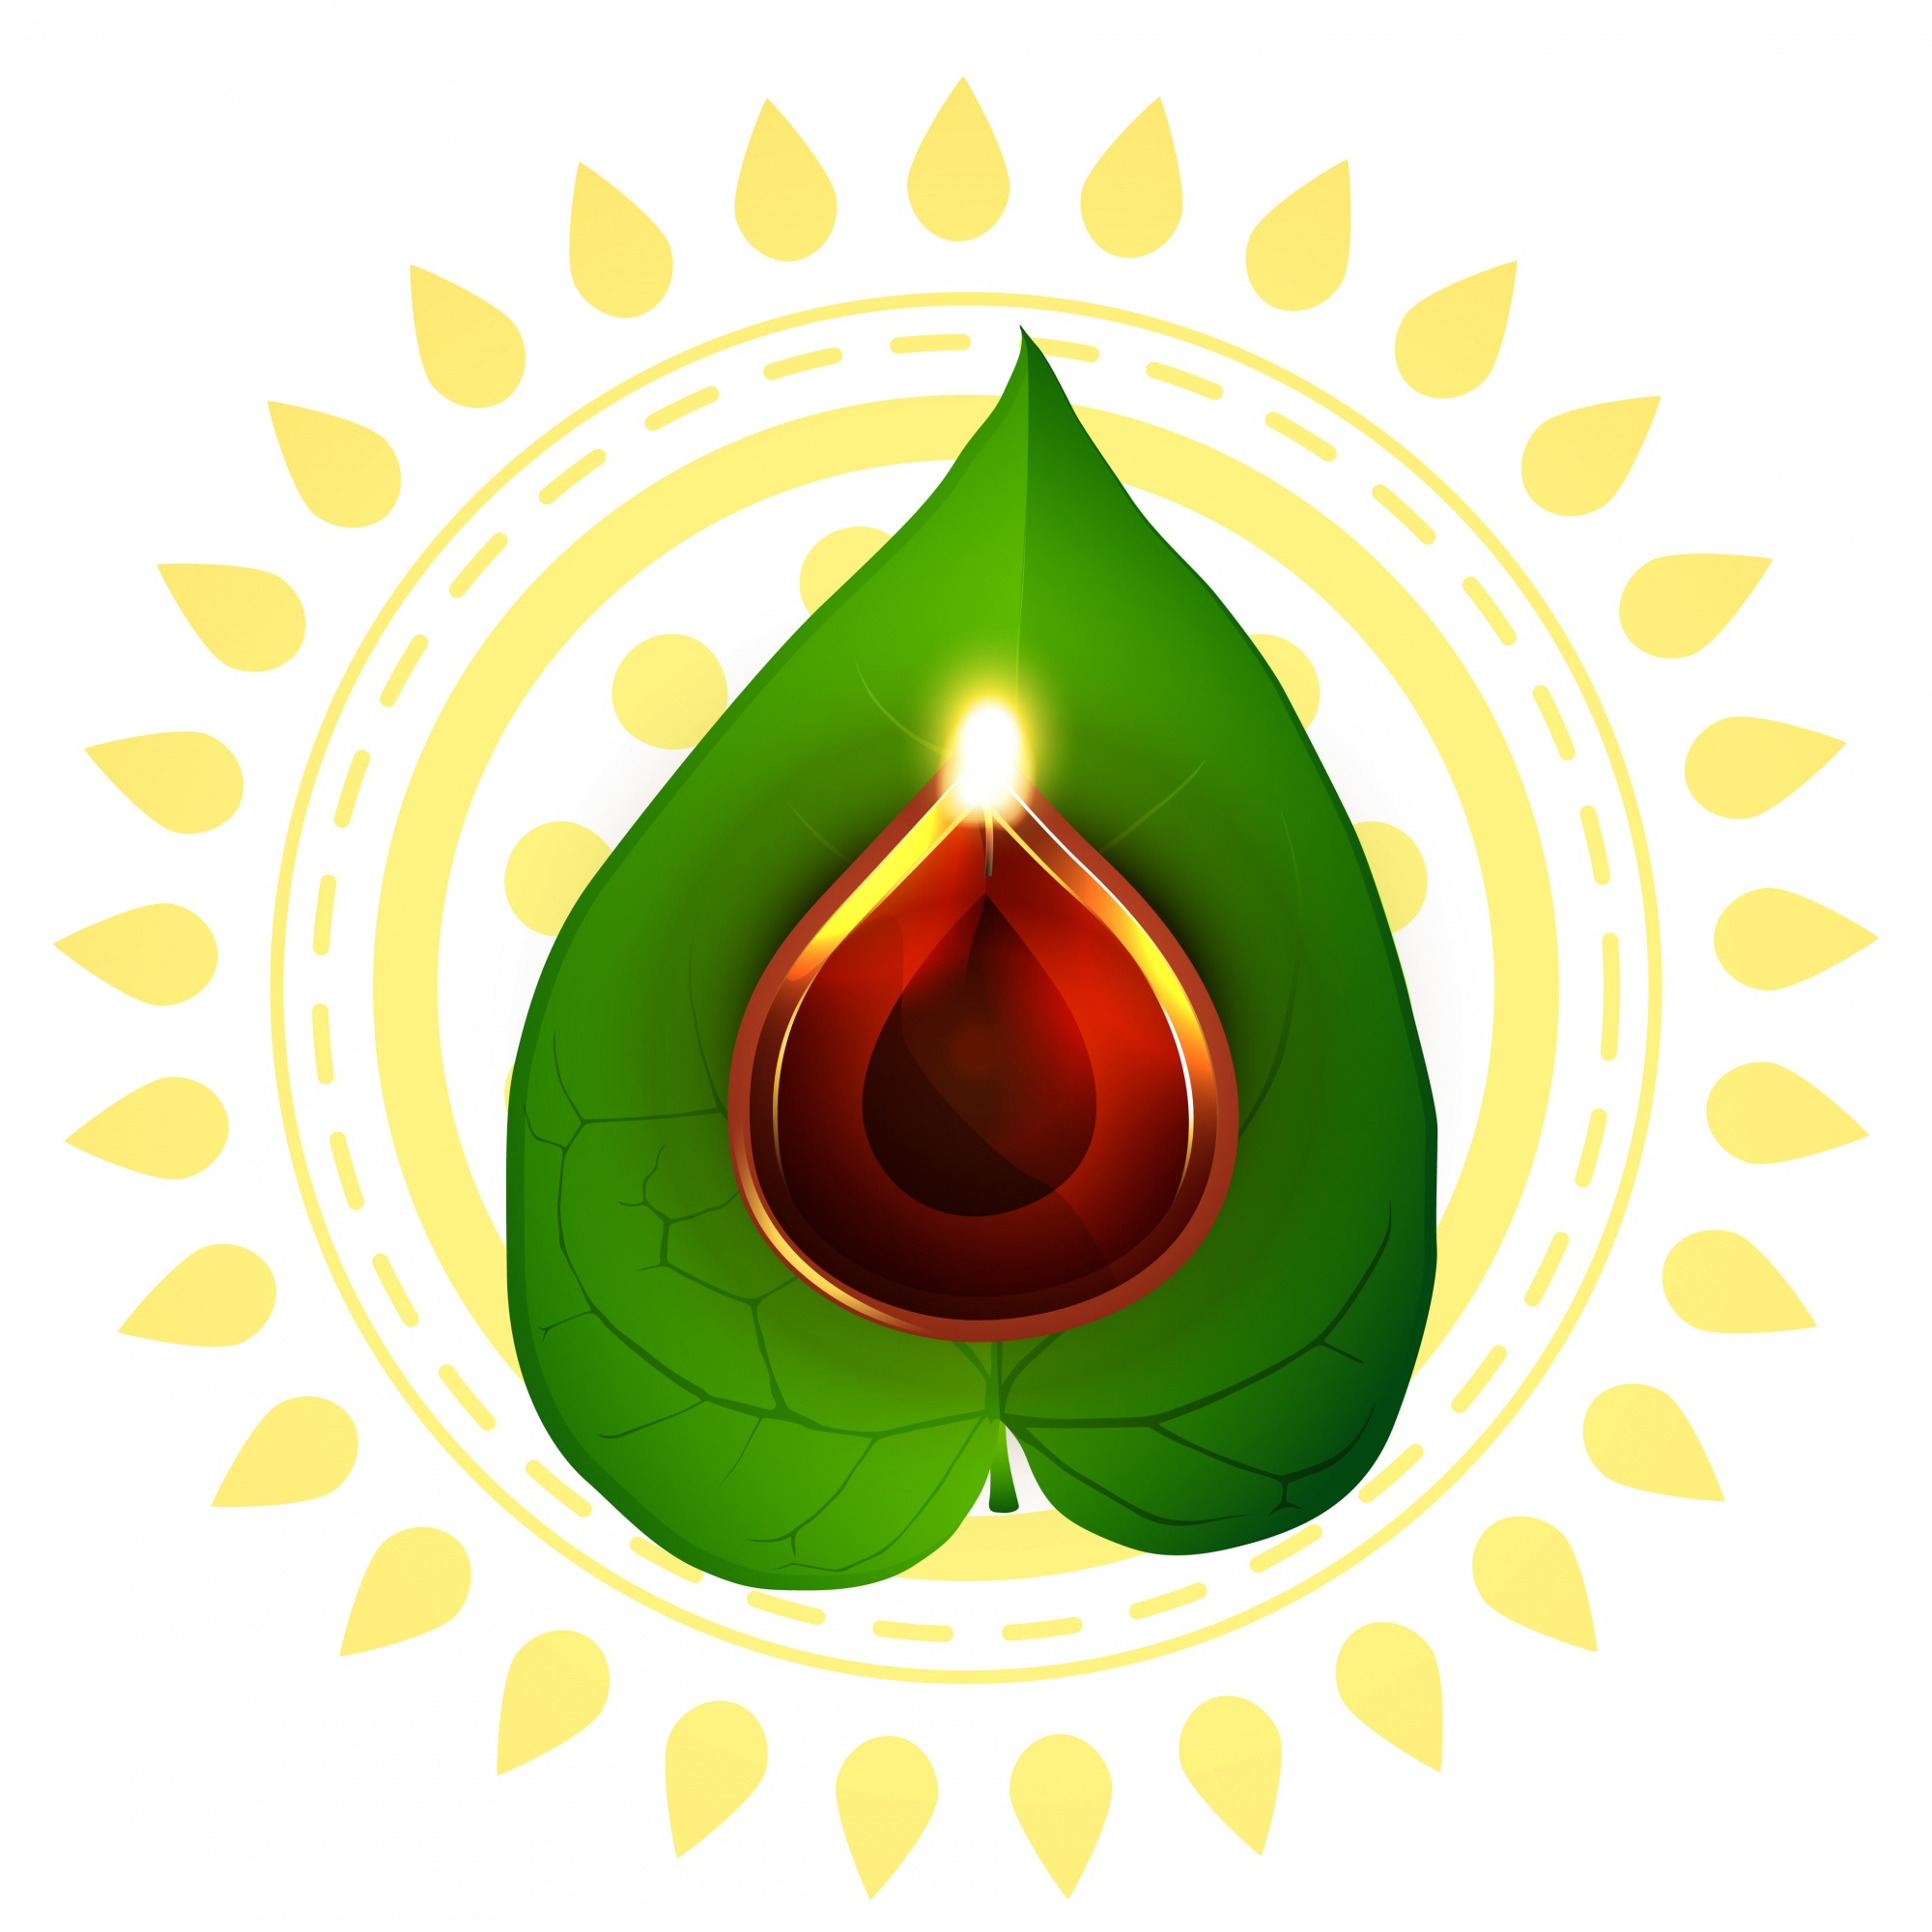 Design for diwali festival with leaf